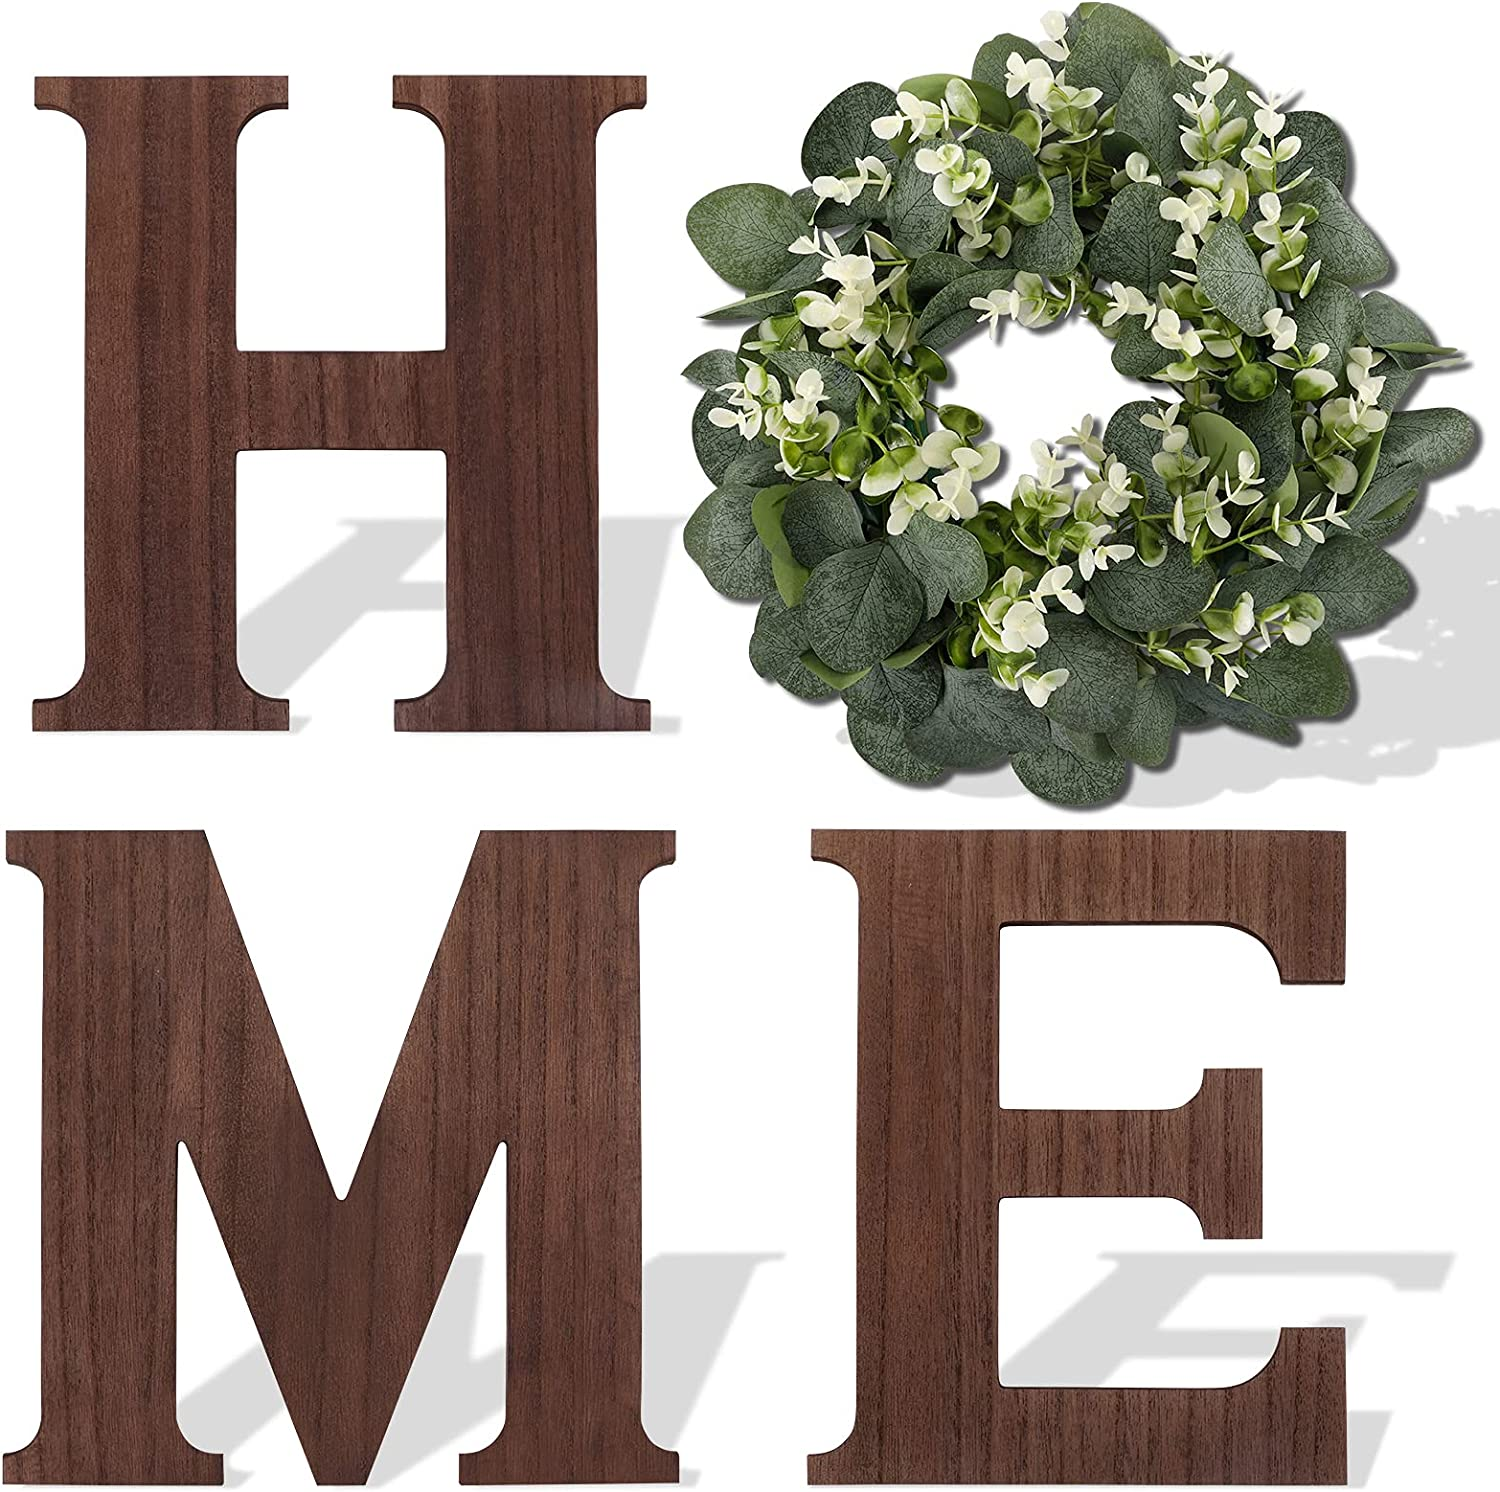 WXBOOM Wooden Home Sign Wall Decor with Artificial Eucalyptus Wreath, Home Hanging Letters for Wall Living Room Rustic Farmhouse